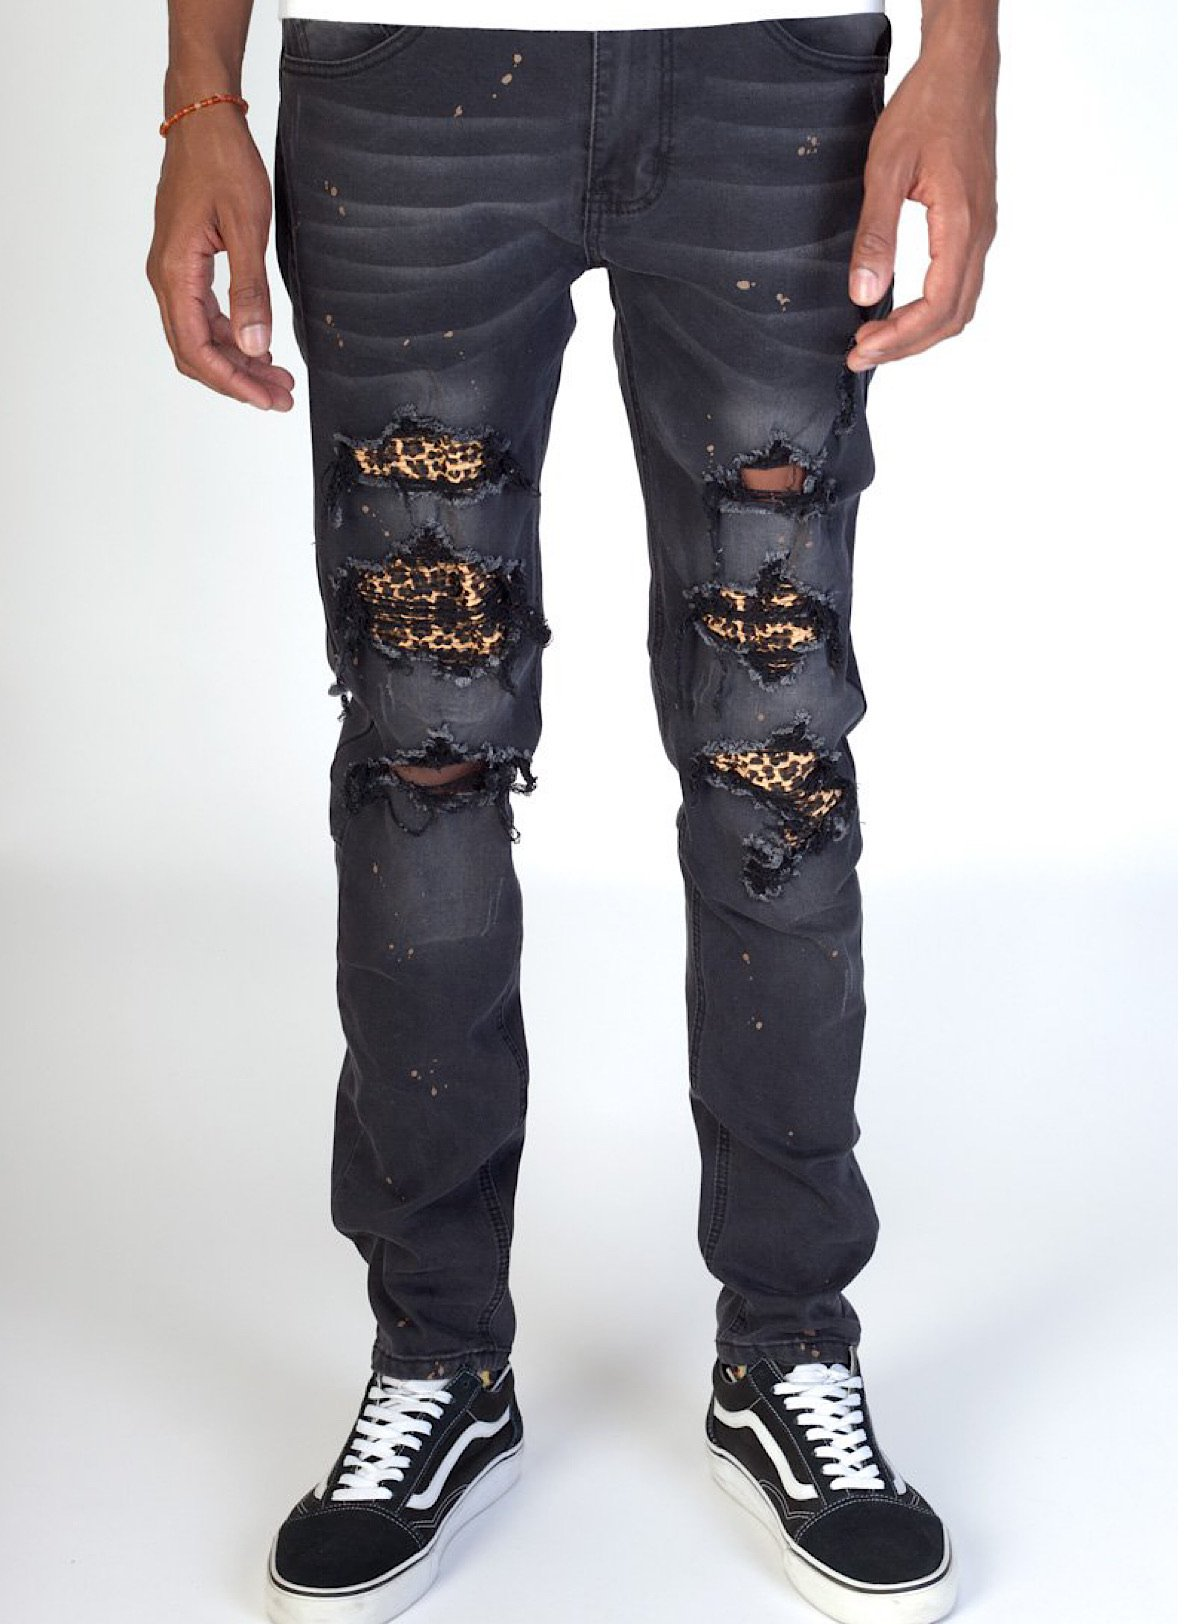 KDNK Jeans - Leopard Patches - Black - KND4305